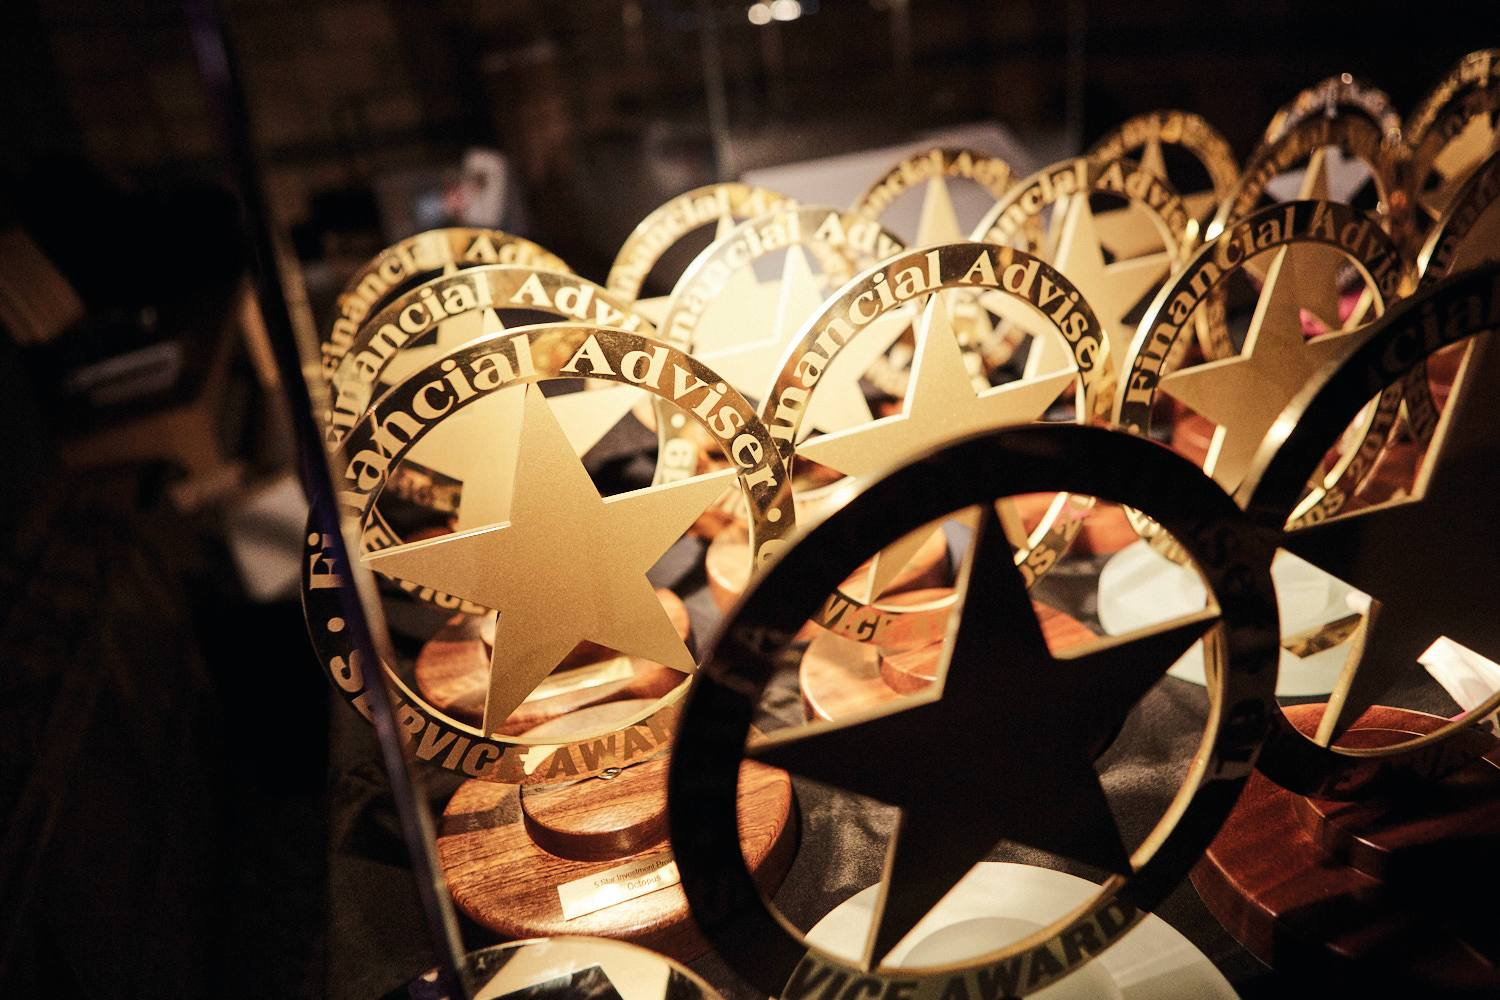 Financial Adviser Service Awards: Voting closes today!